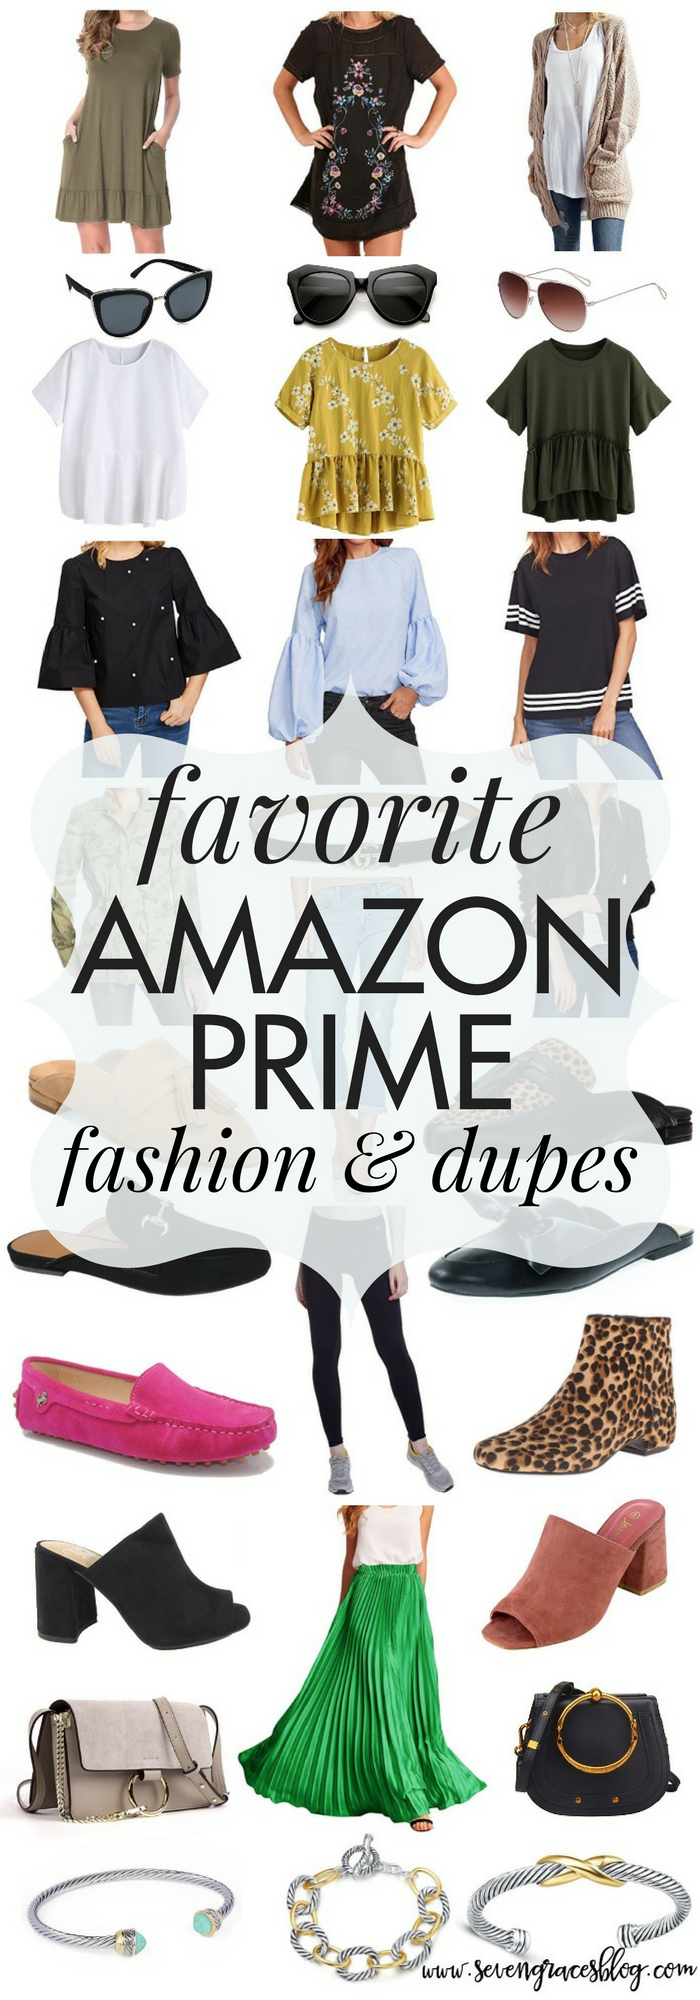 7091489688a The ultimate Amazon Prime fashion picks for your closet. The best pieces to  add to